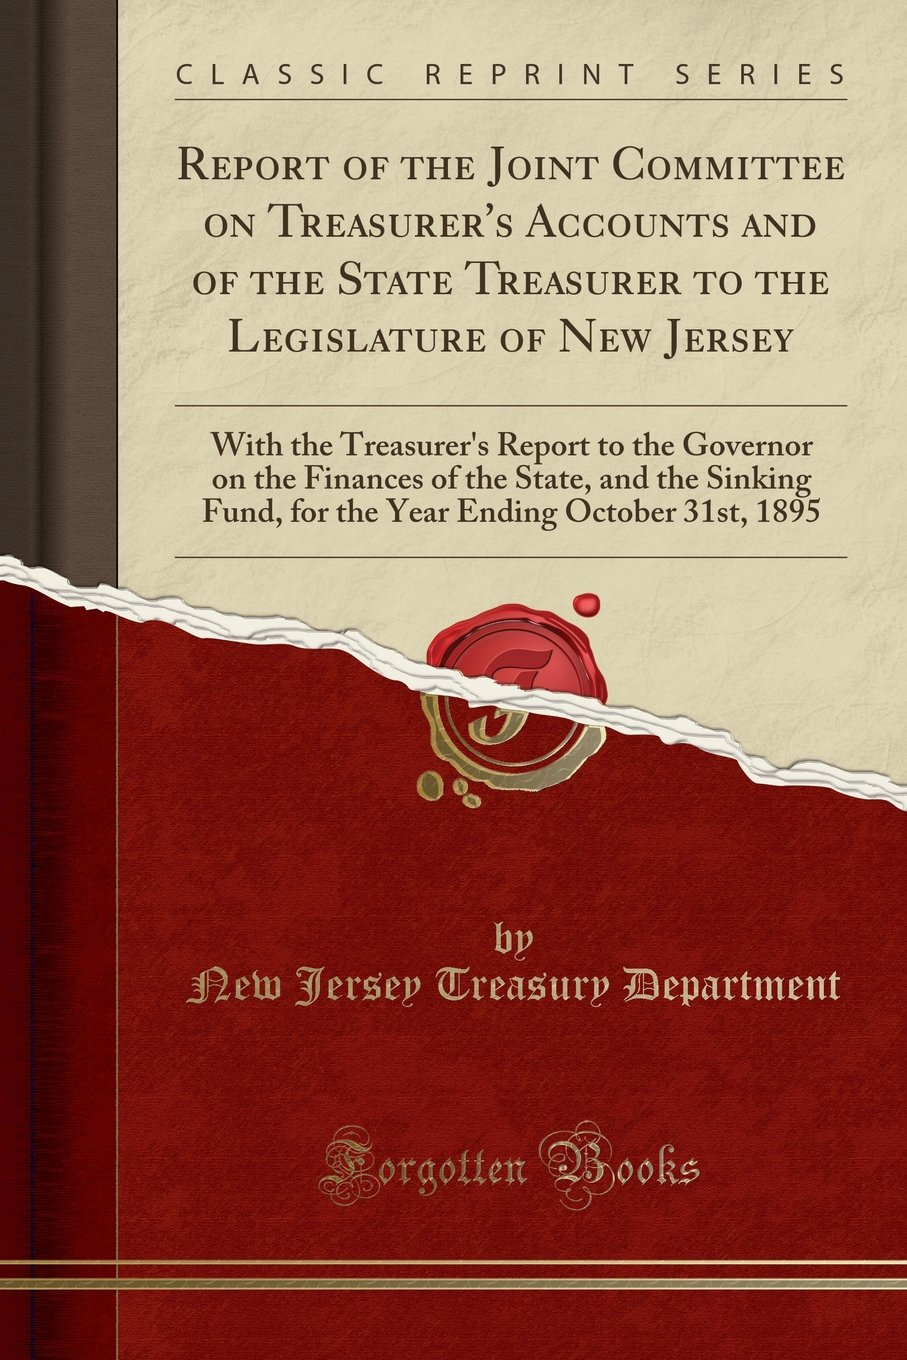 Read Online Report of the Joint Committee on Treasurer's Accounts and of the State Treasurer to the Legislature of New Jersey: With the Treasurer's Report to the ... Fund, for the Year Ending October 31st, 1895 pdf epub